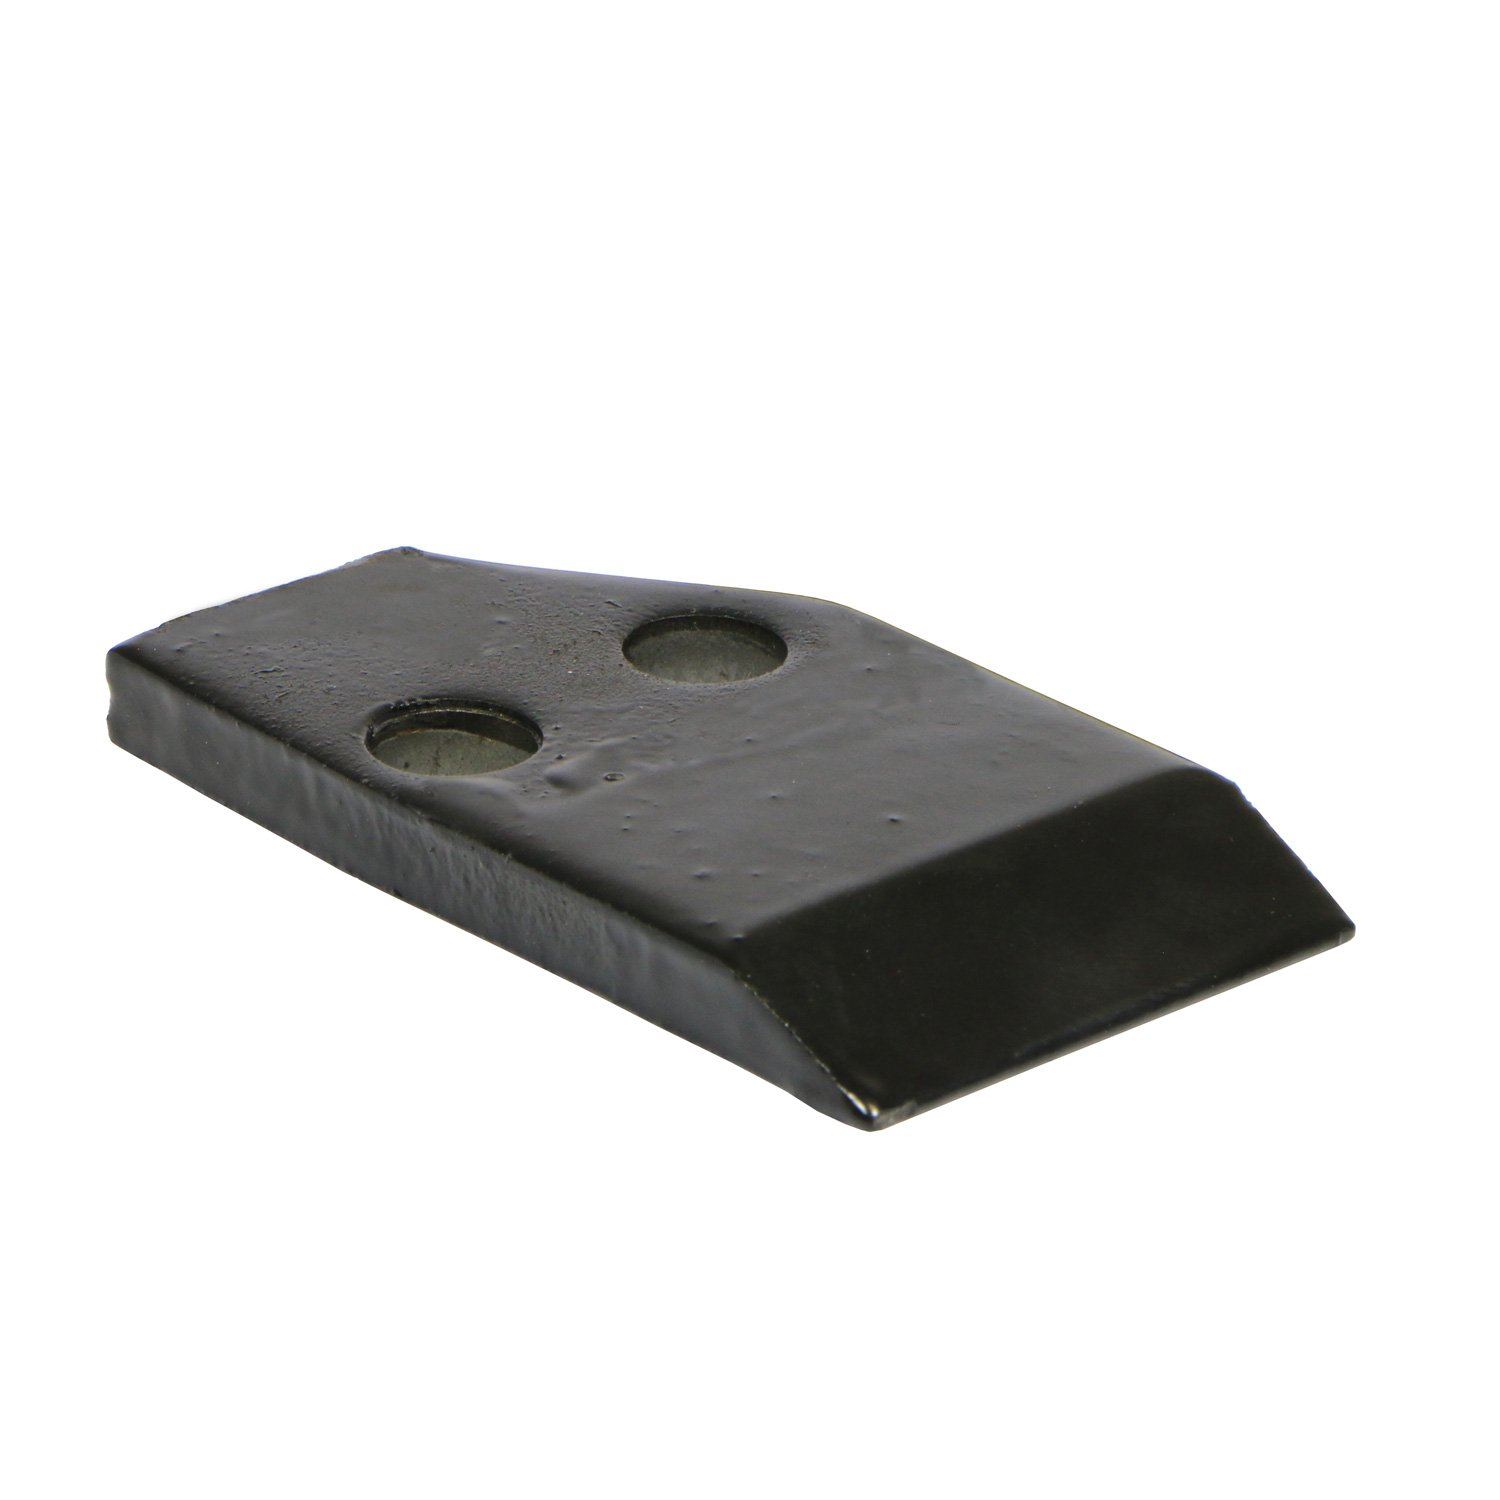 RanchEx 104081 Replacement Cutting Tooth - Bolt On For RanchEx 6'' Diameter Compact Auger by RanchEx